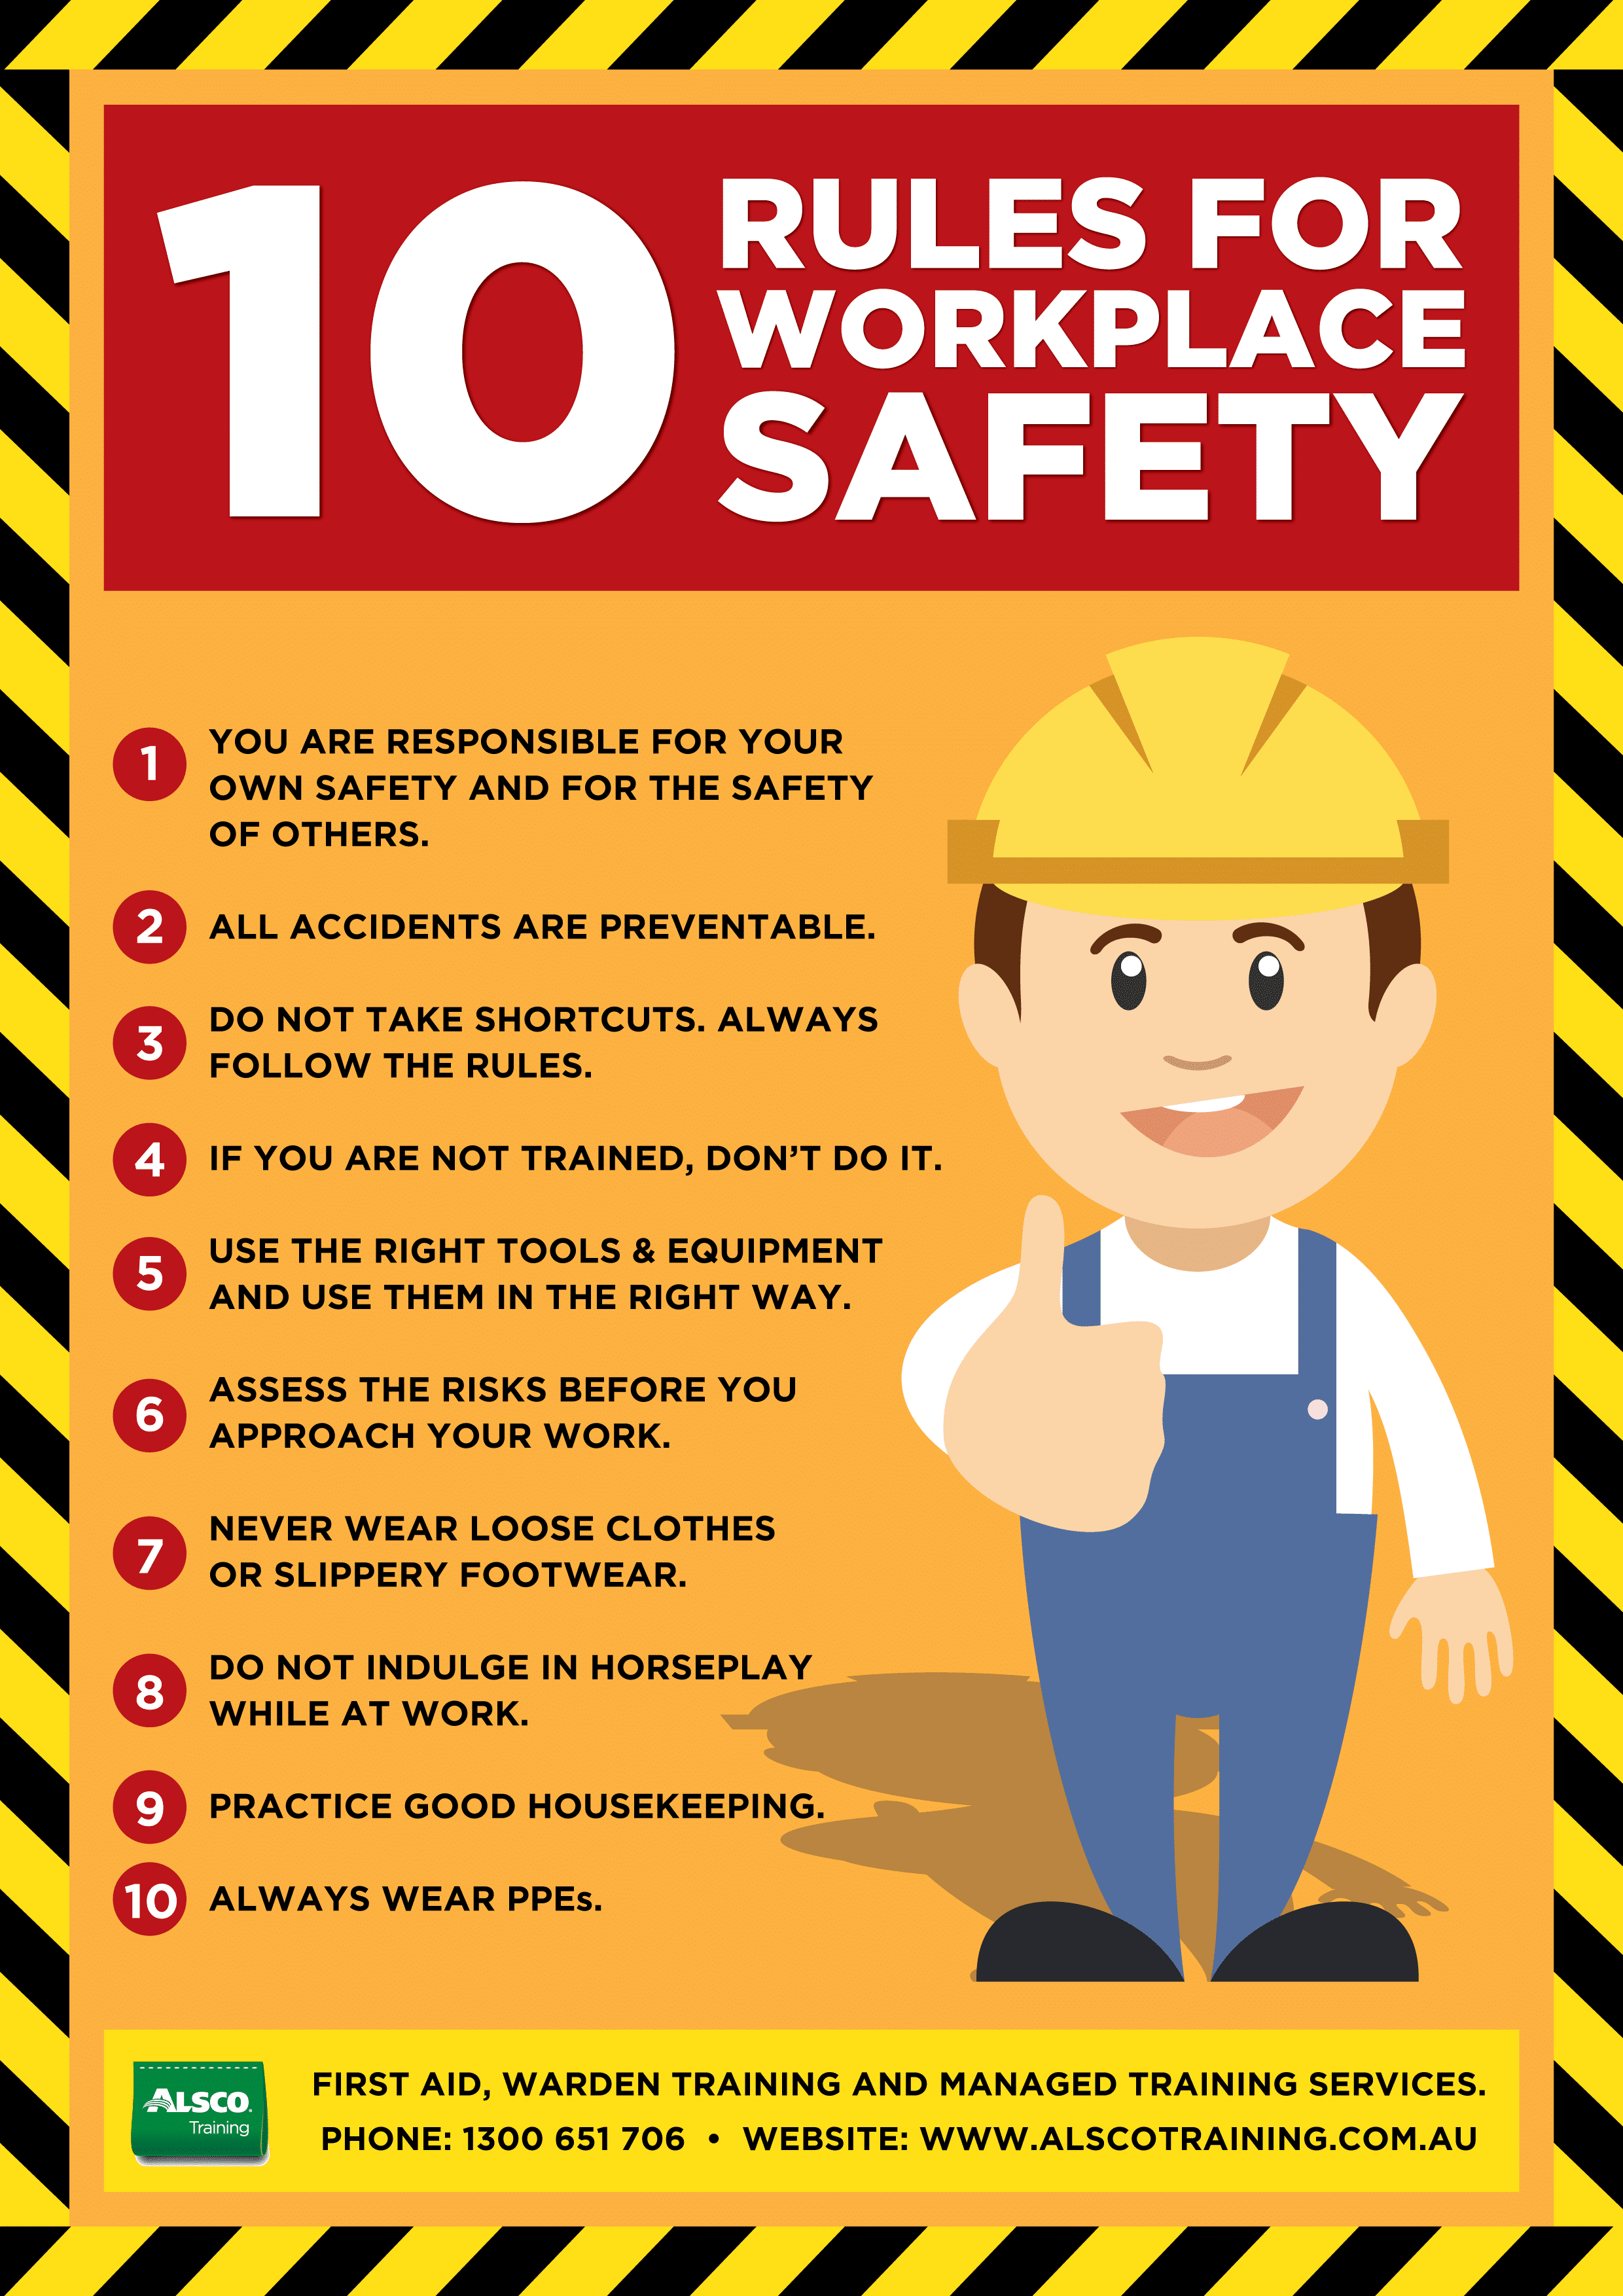 alsco training safety posters workplace safety rules a4 alsco training